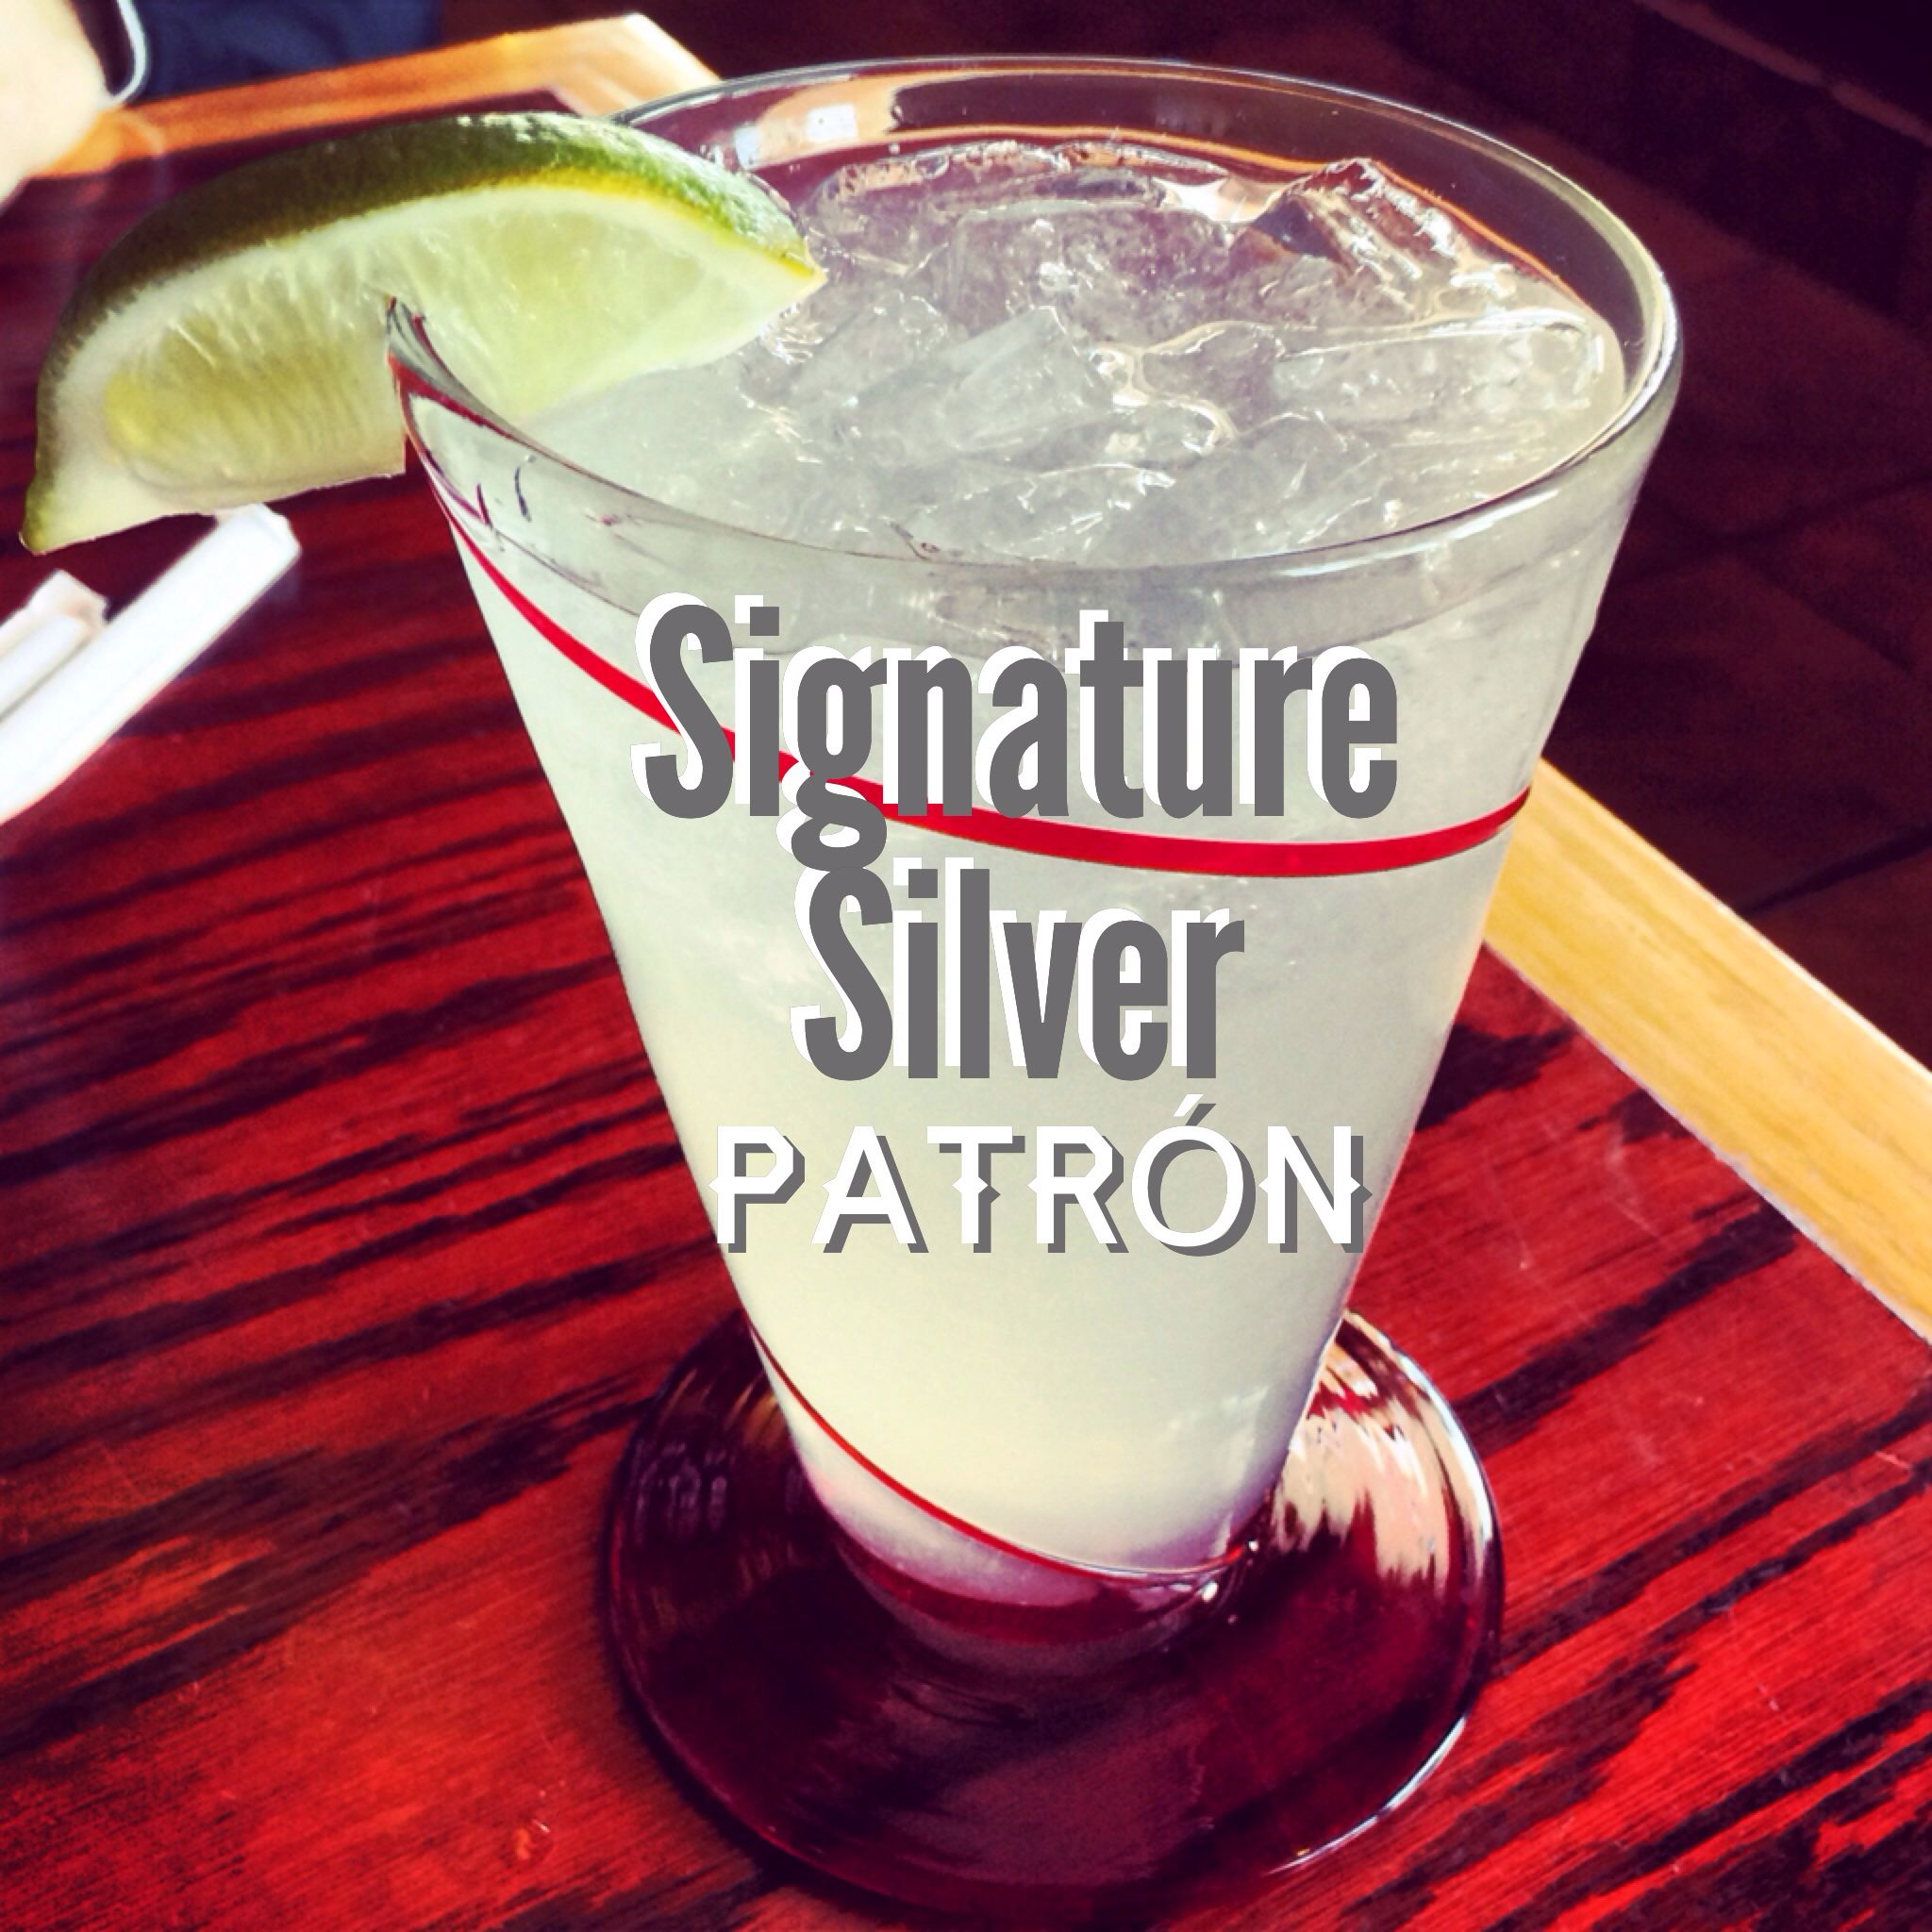 Signature Silver Patron Margarita From Red Robin Life Is Good On The Top Shelf Exceptional Patron Sil How To Make Margaritas Red Robin Recipes Patron Silver